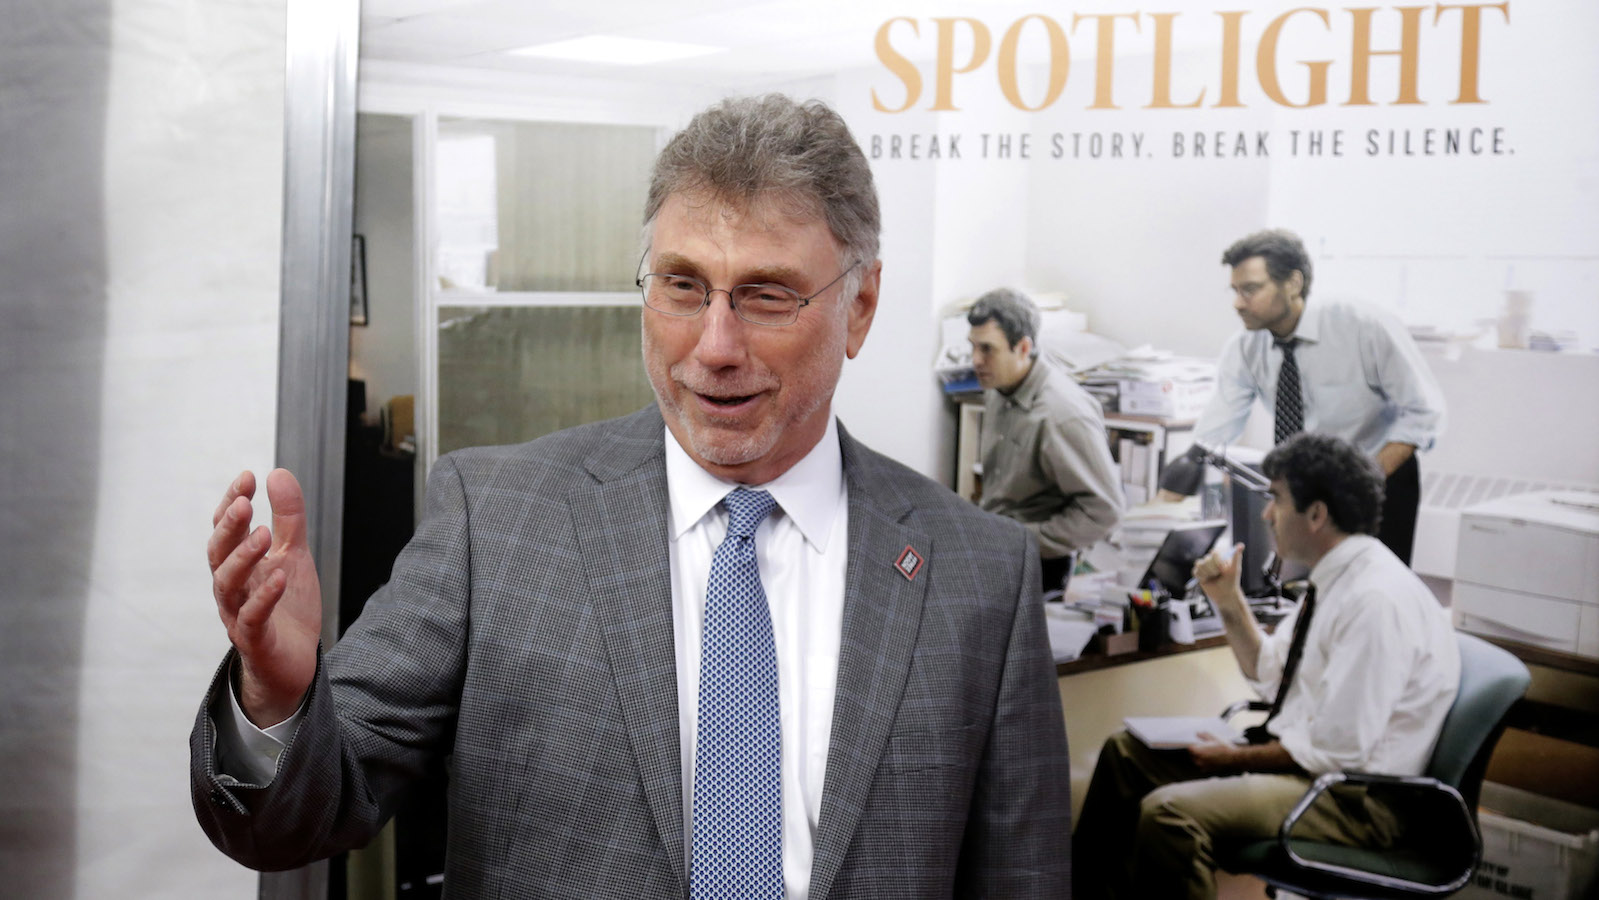 """Marty Baron, former editor of The Boston Globe, walks the red carpet as he attends the Boston area premiere of the film """"Spotlight"""" at the Coolidge Corner Theatre, in Brookline, Mass."""